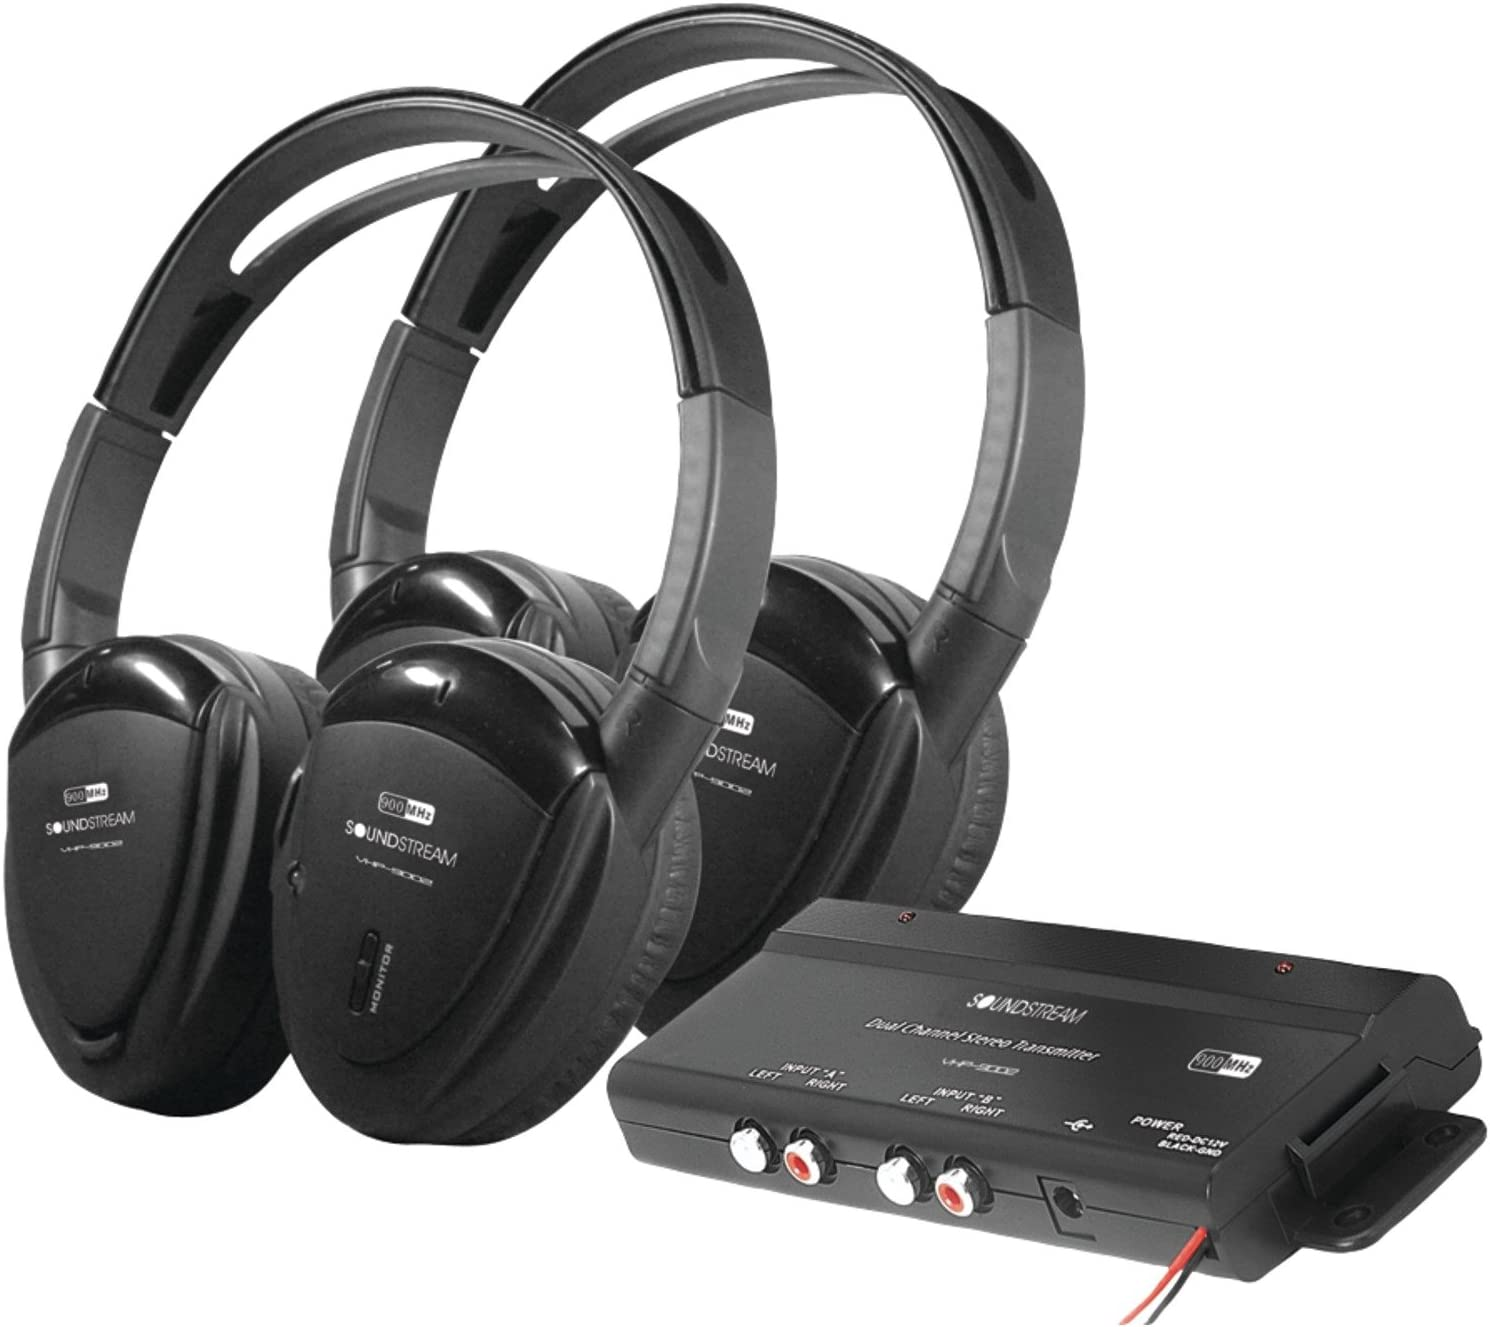 B001584QQU Power Acoustik HP902R Feet POWER ACCOUSTIC 2 SWIVEL 2CH. WIRELESS 715CK8jAAgL.SL1500_